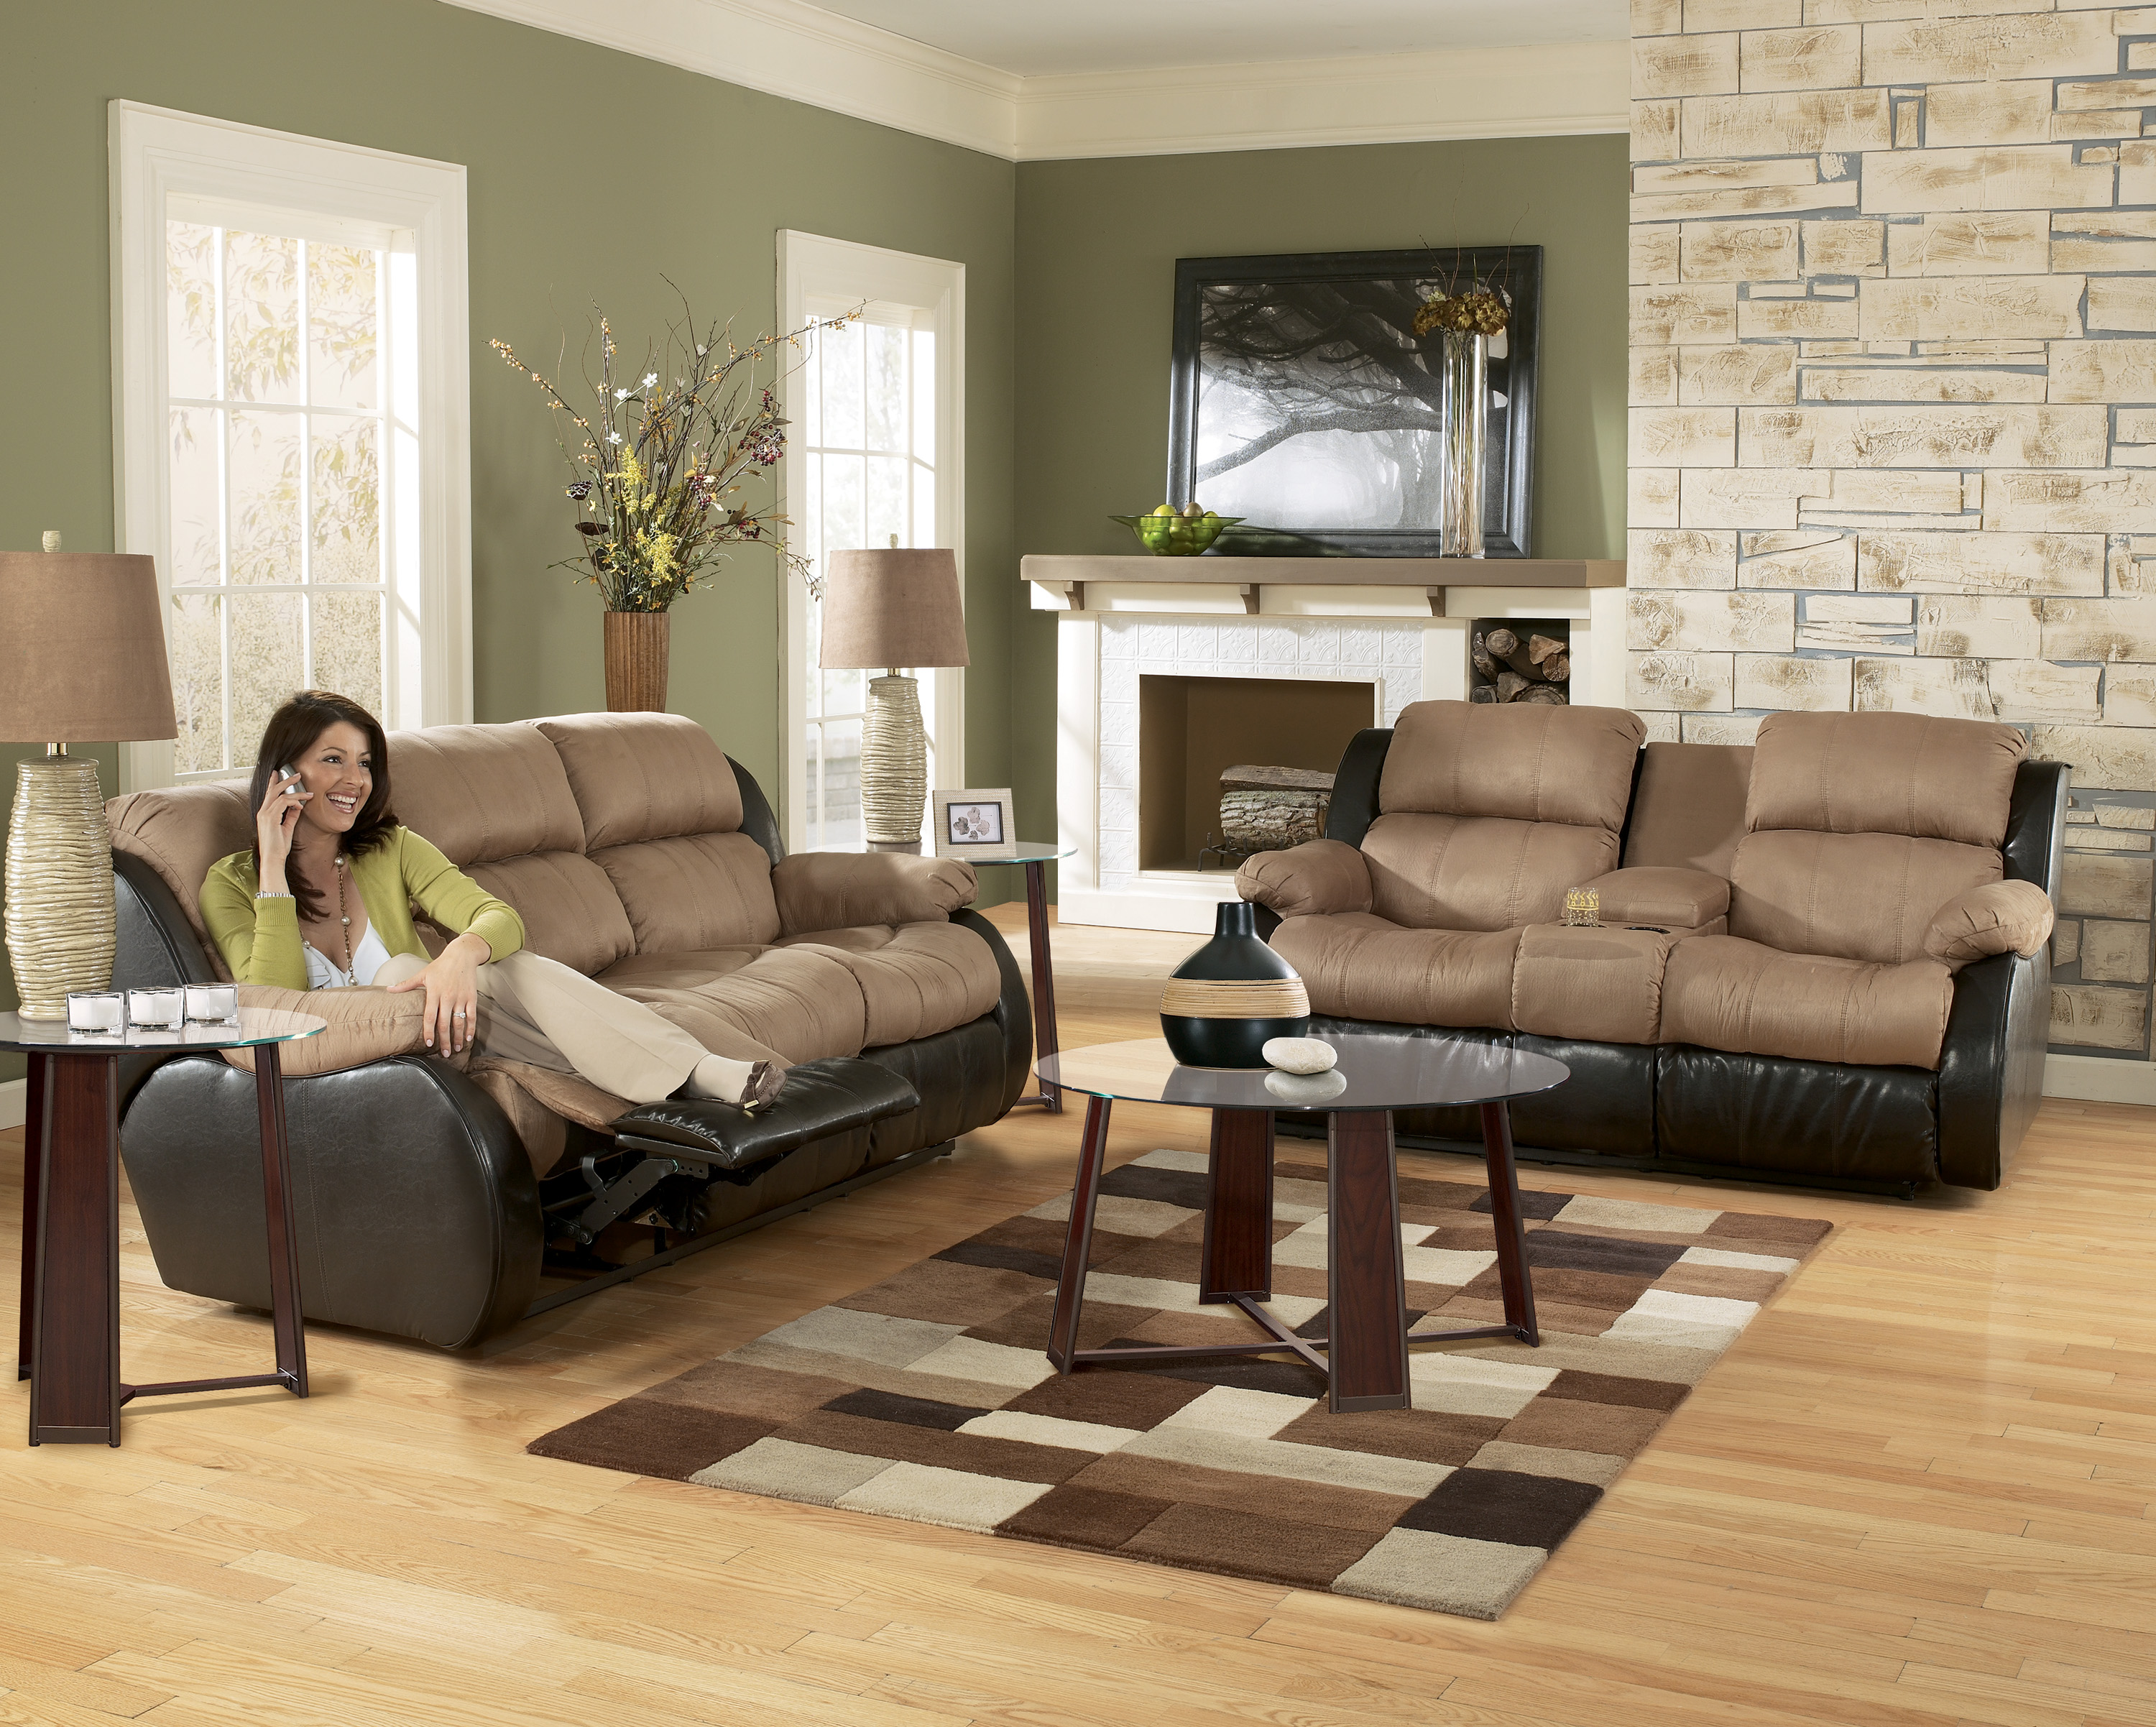 Ashley furniture presley 31501 cocoa living room set for Living room furniture collections